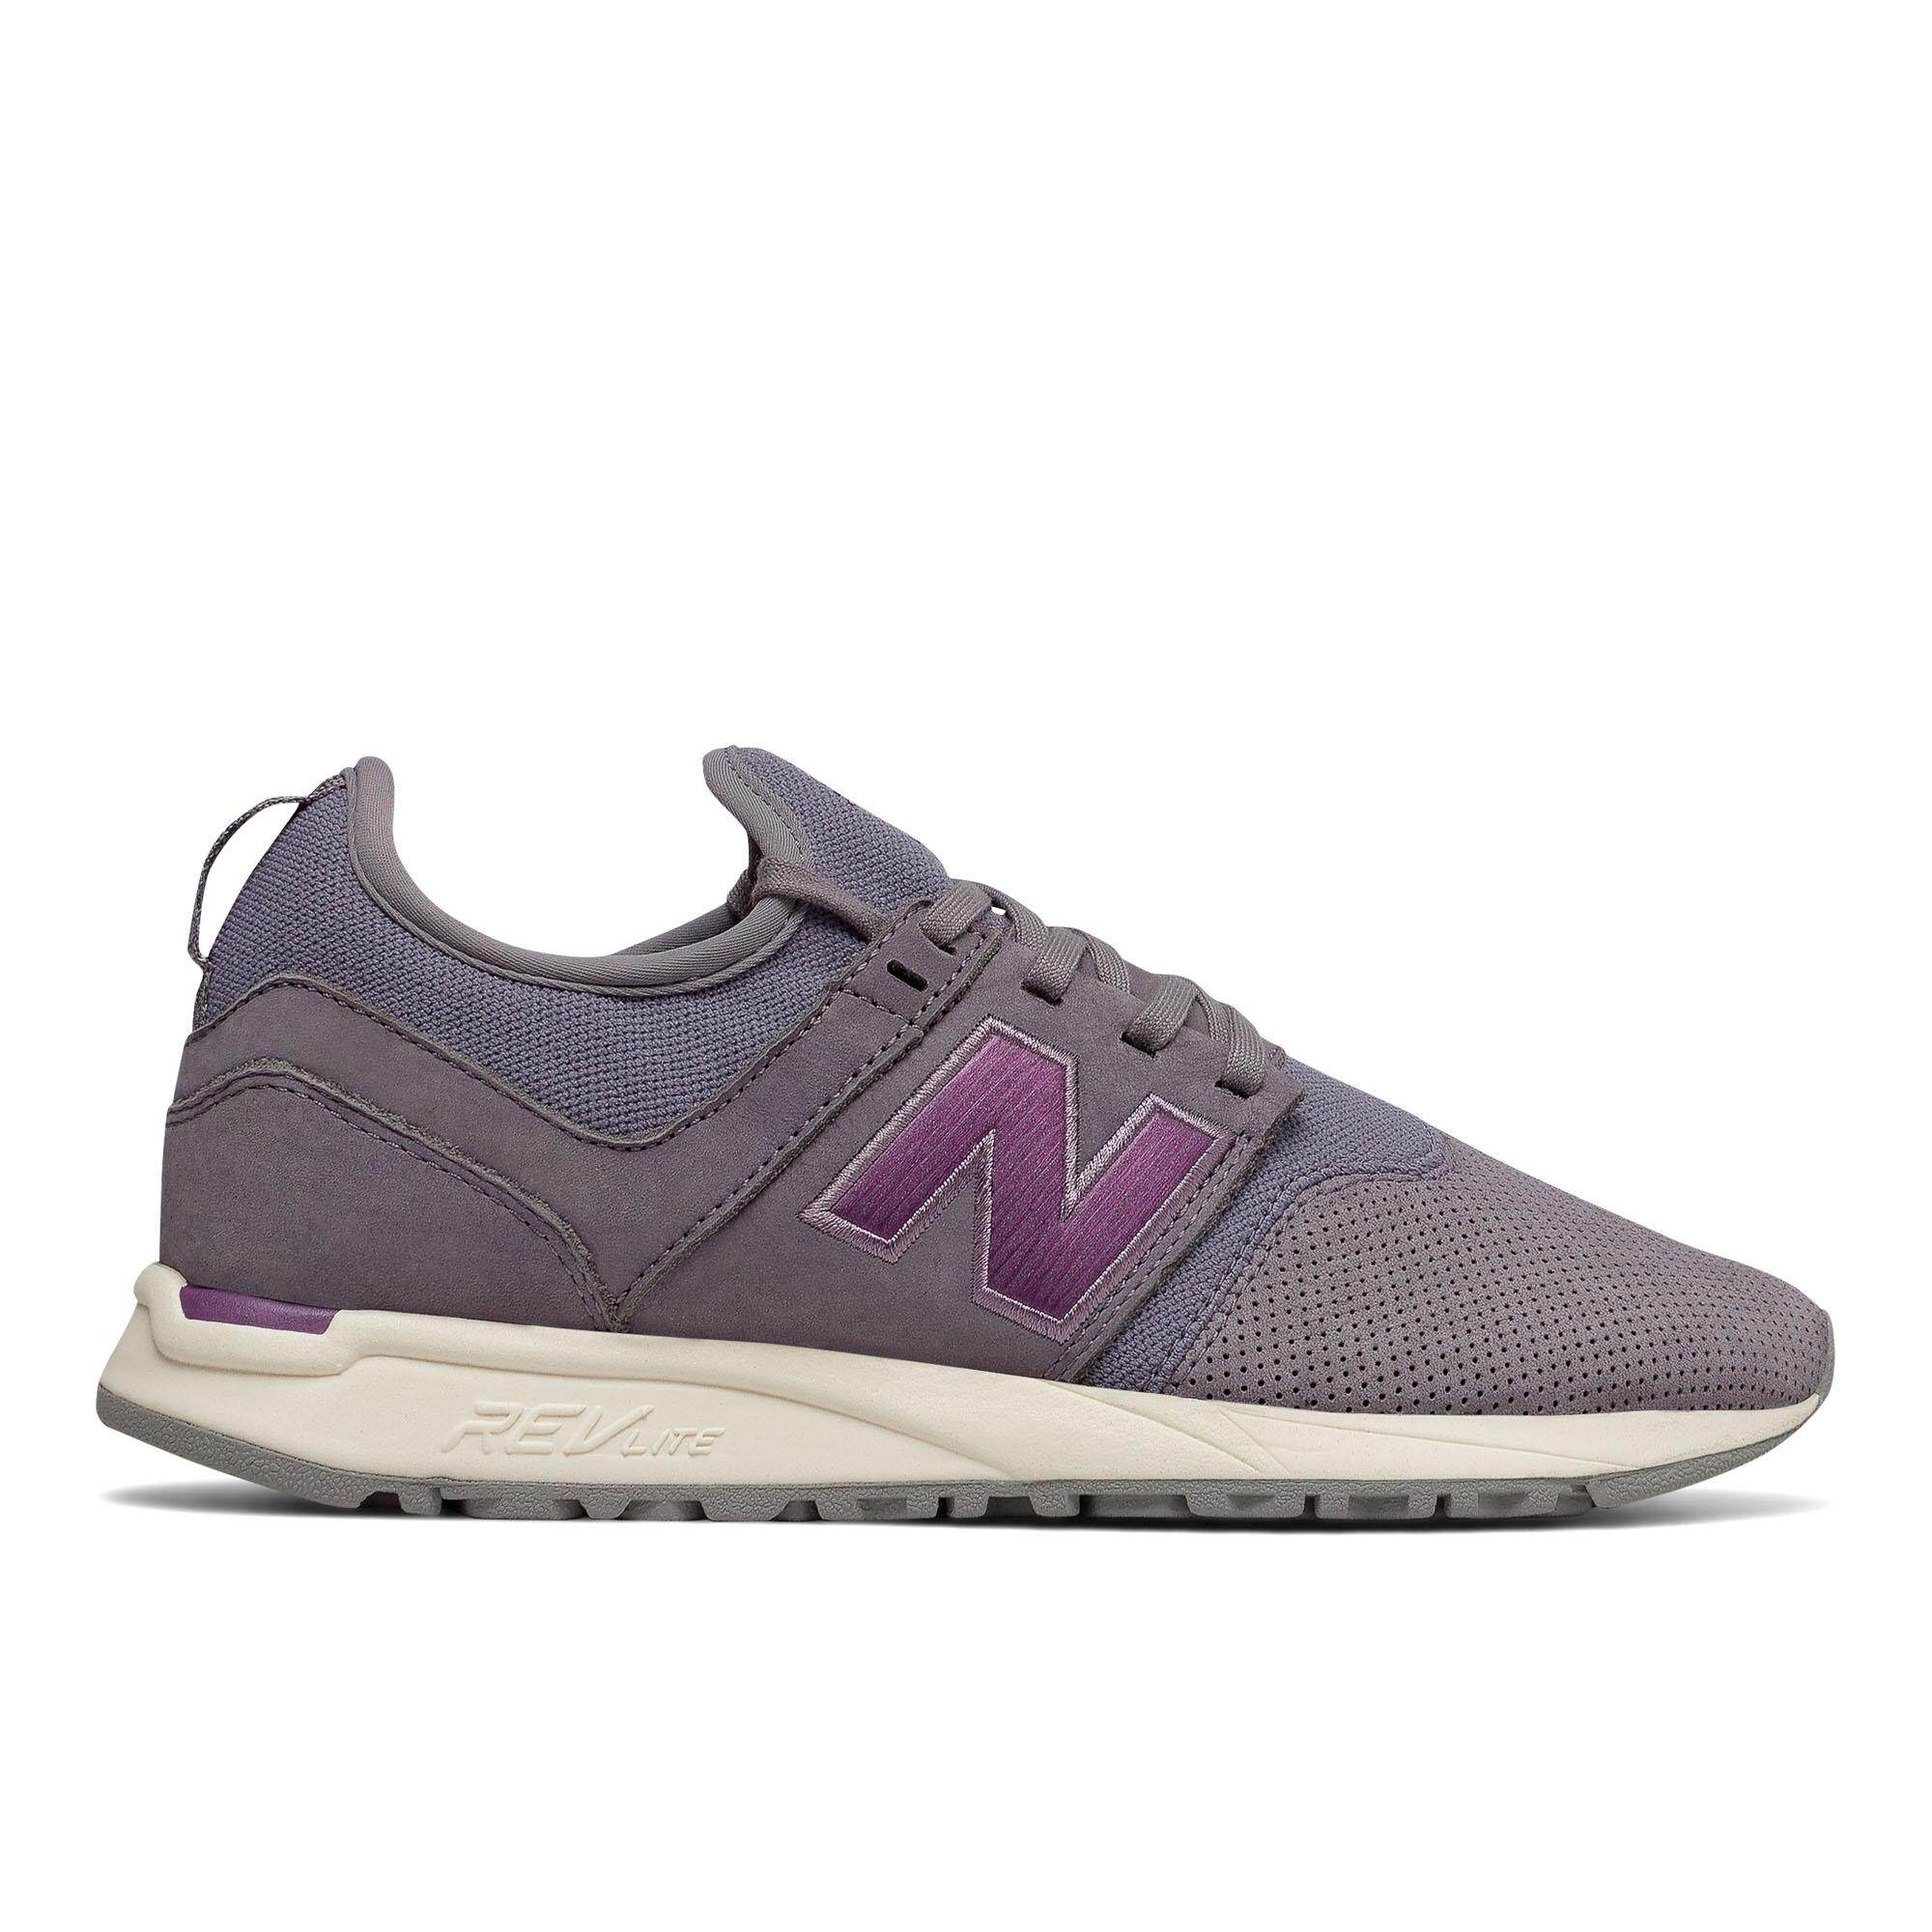 a6acb1596ae5f New Balance Shoes for the Best Price in Malaysia